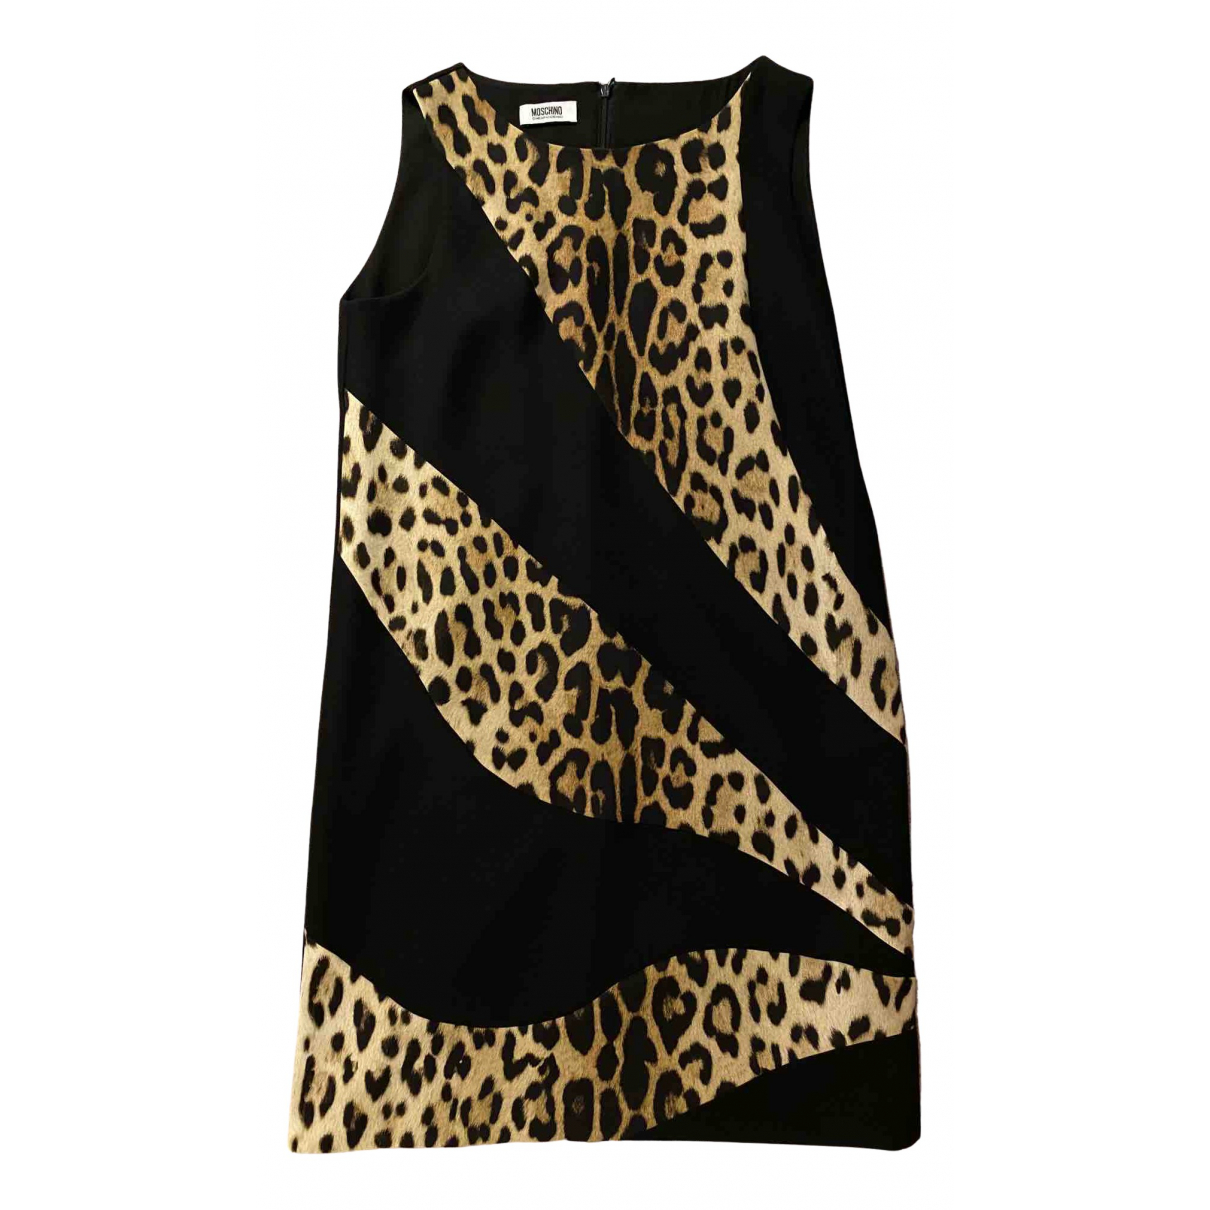 Moschino Cheap And Chic \N Black dress for Women 38 FR